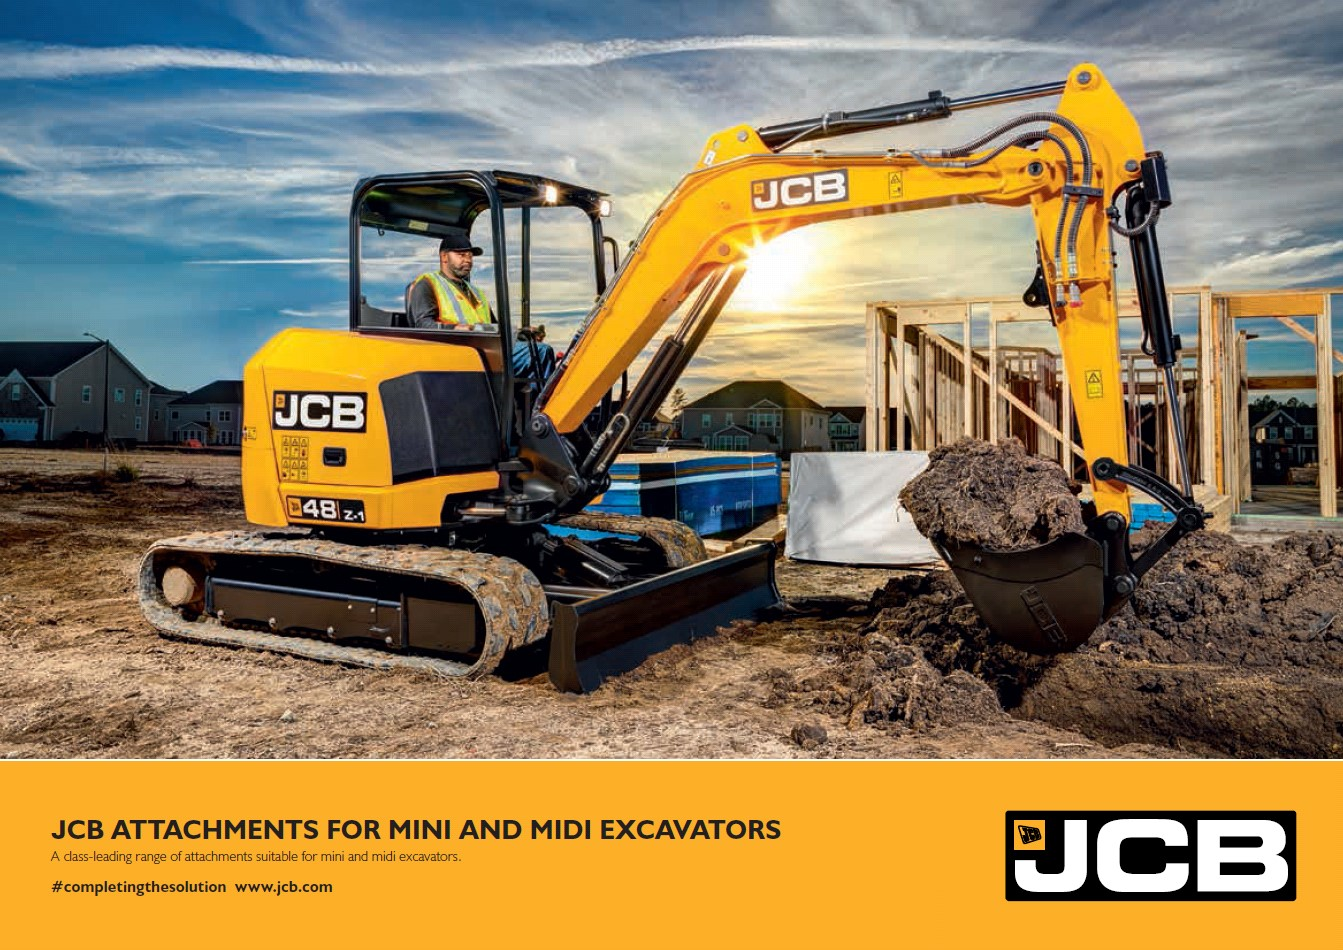 Cover Image of JCB Attachments for Mini and Midi Excavators brochure